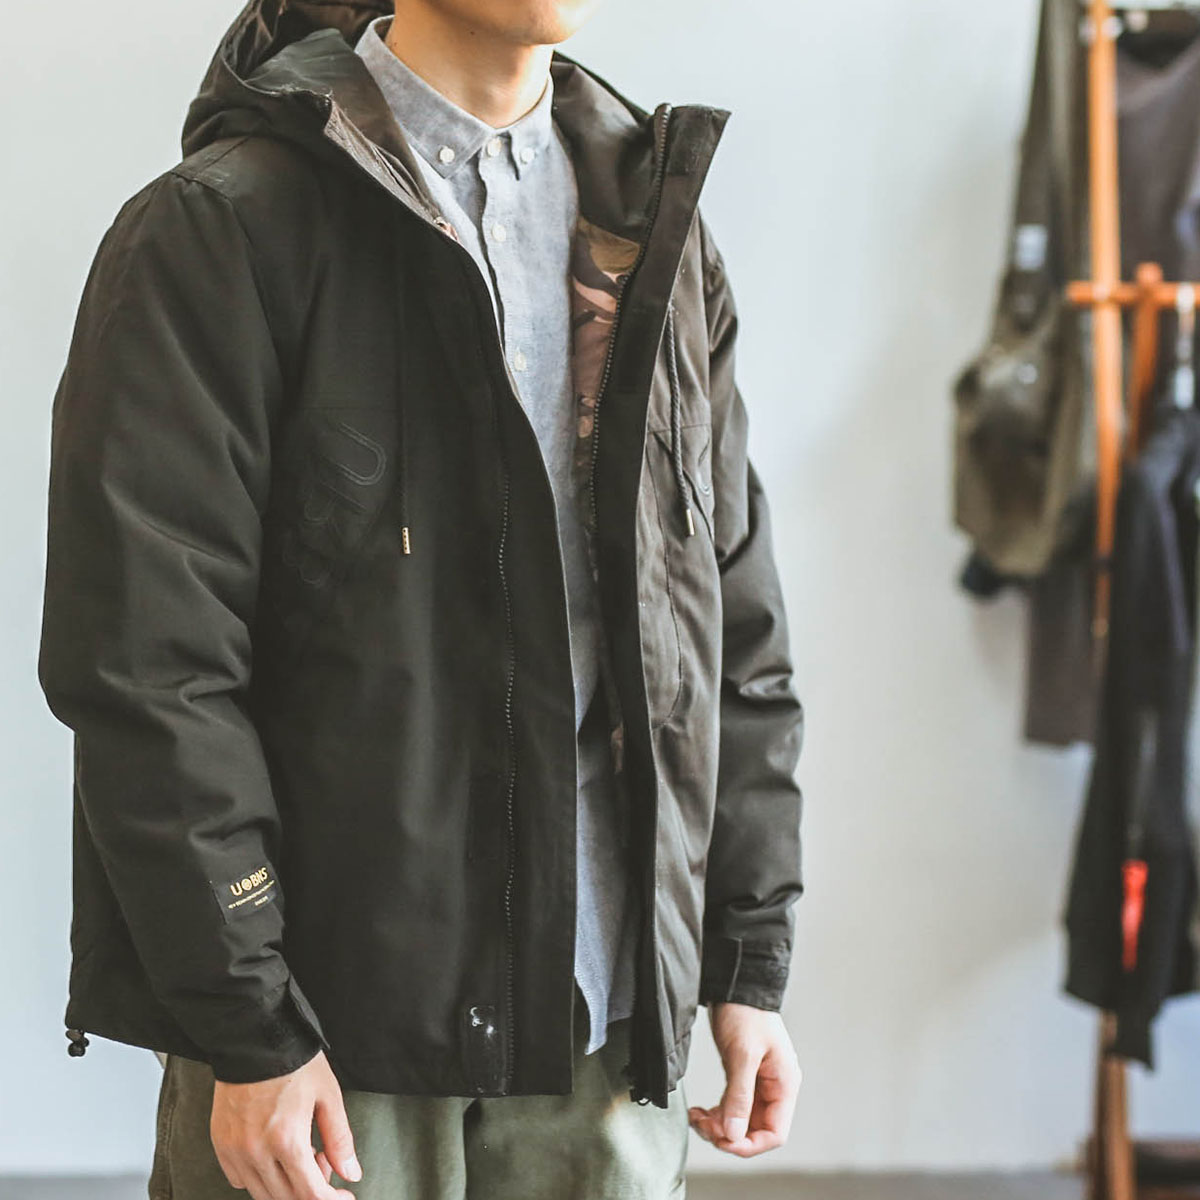 Hey, Ma qizuo, Japanese department, winter thickened pilot jacket, overalls, cotton padded jackets, cotton padded clothes, fashion brand couple, cotton padded man